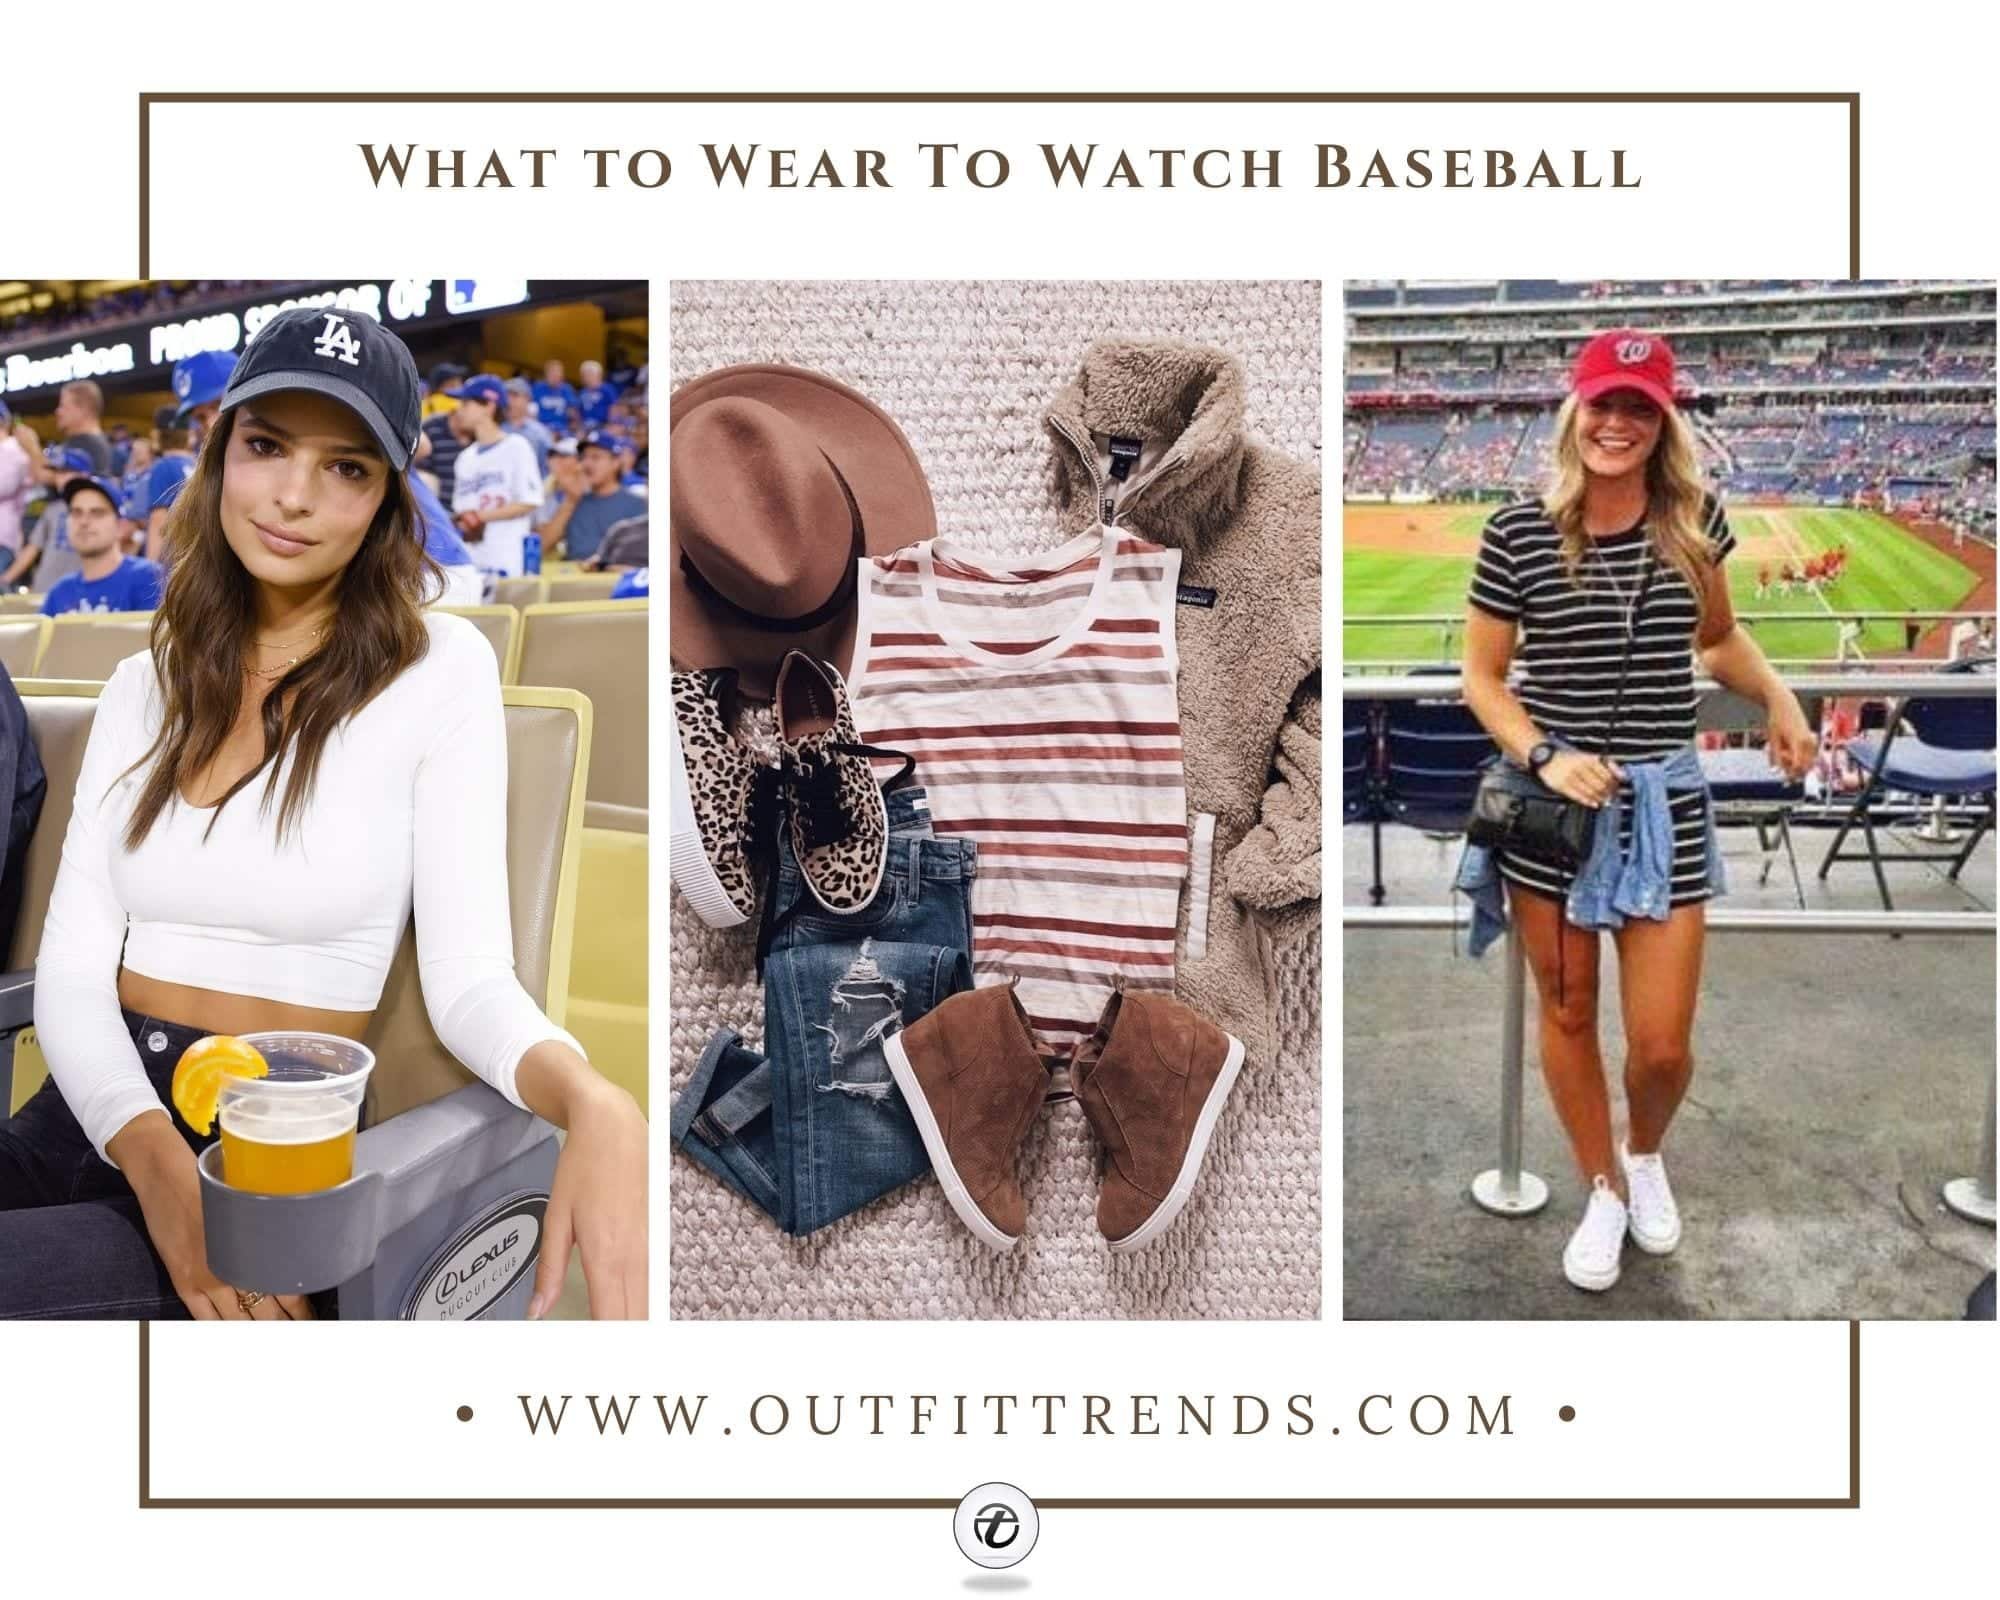 25 Baseball Game Outfits-What to Wear to Watch a Baseball Game